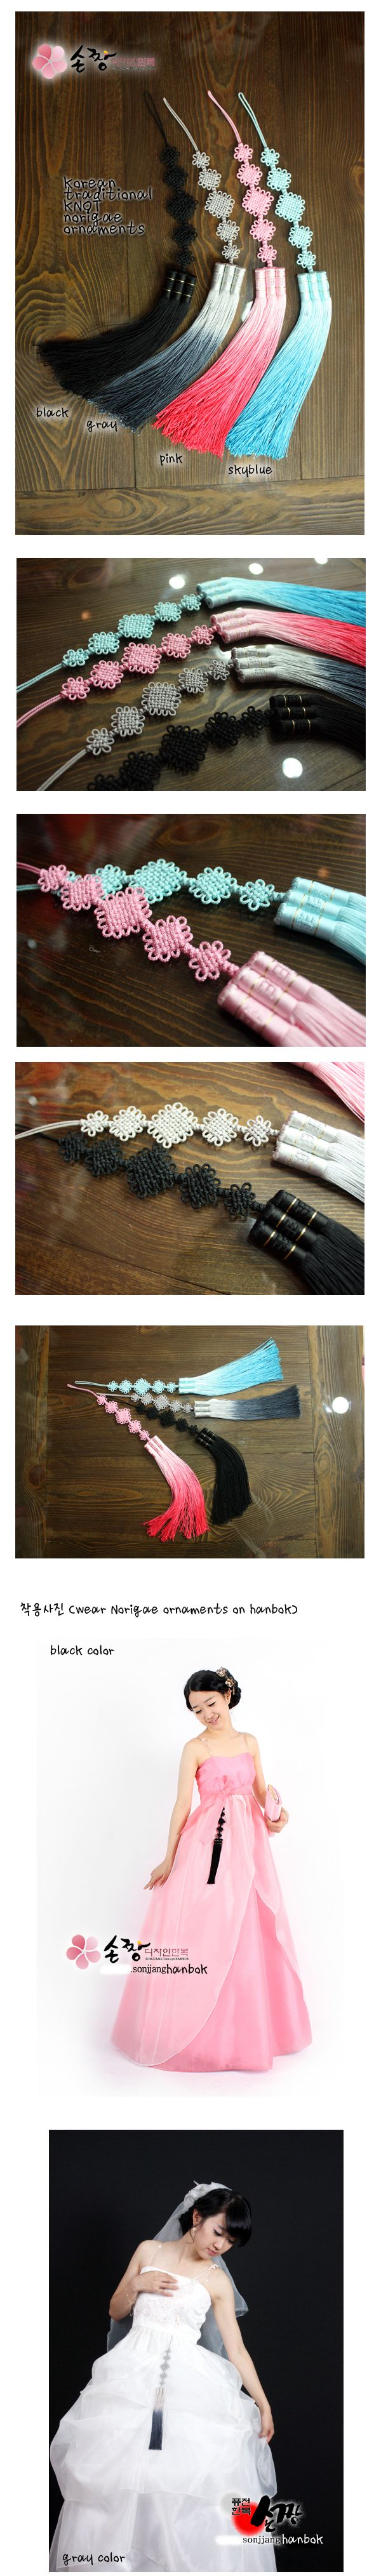 HANBOK -accessories for korean clothes,dress. hanbok shoes,norigae,korean traditional accessory